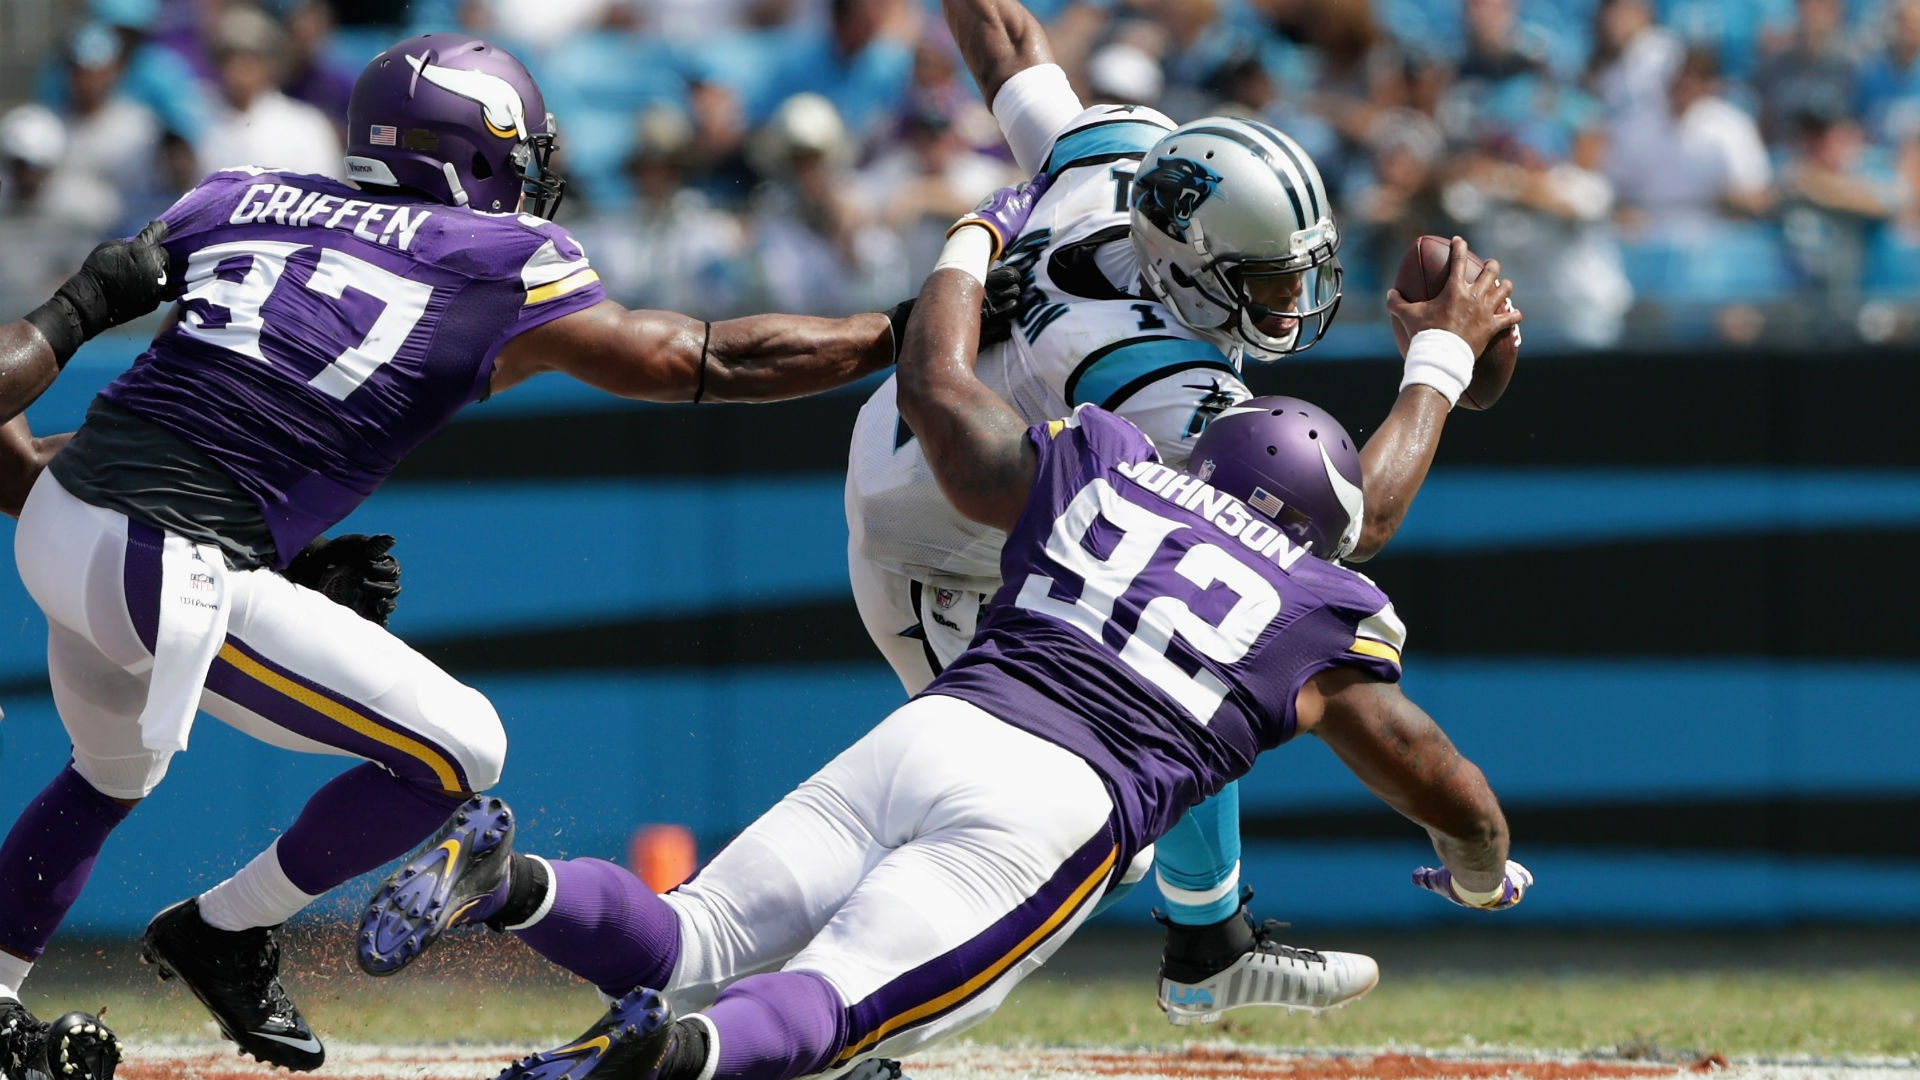 Vikings-defense-092716-getty-ftrjpg_1fzkenhmgcur19c0qn4x2g8ii